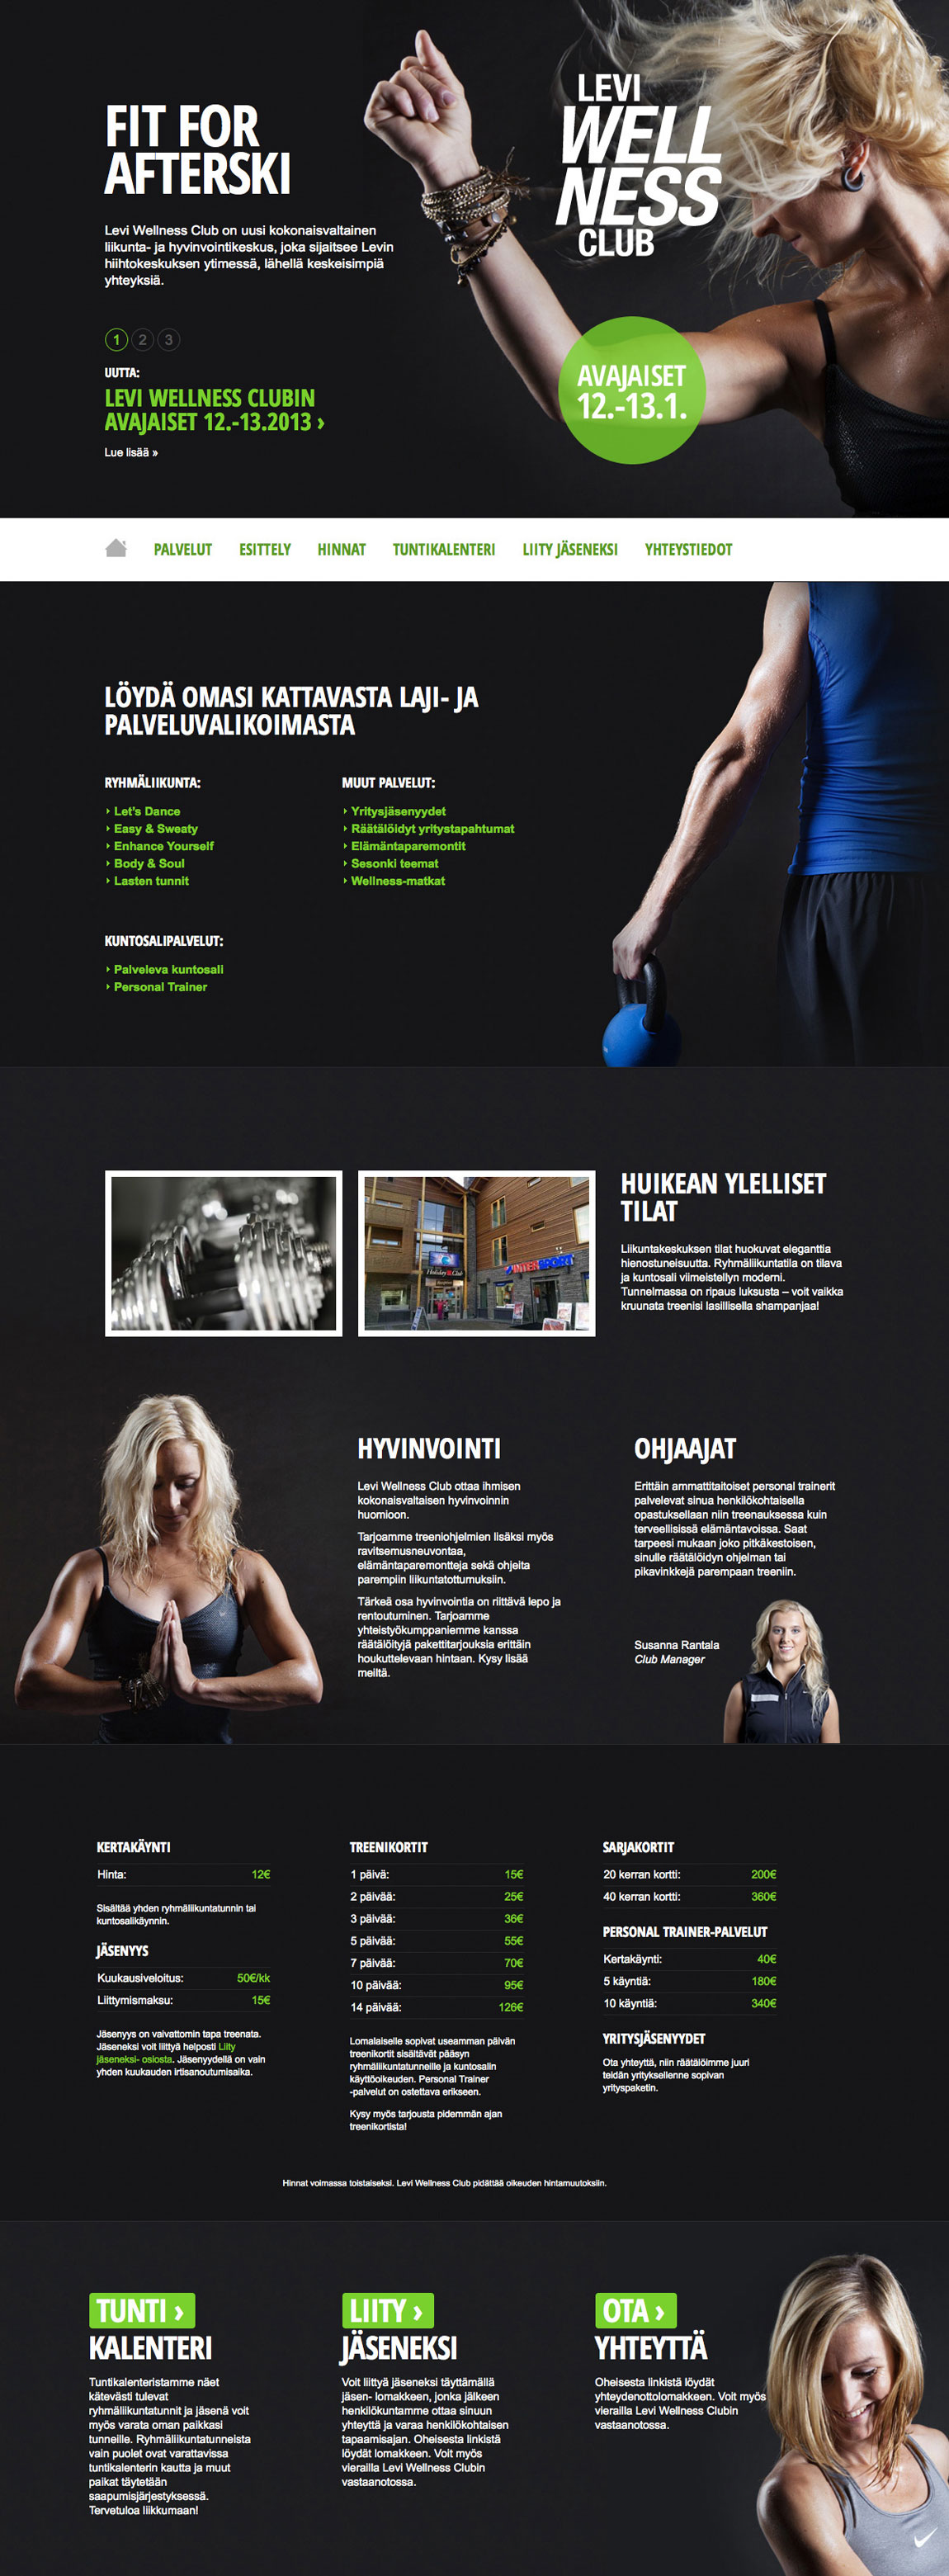 Levi Wellness Club Website Screenshot